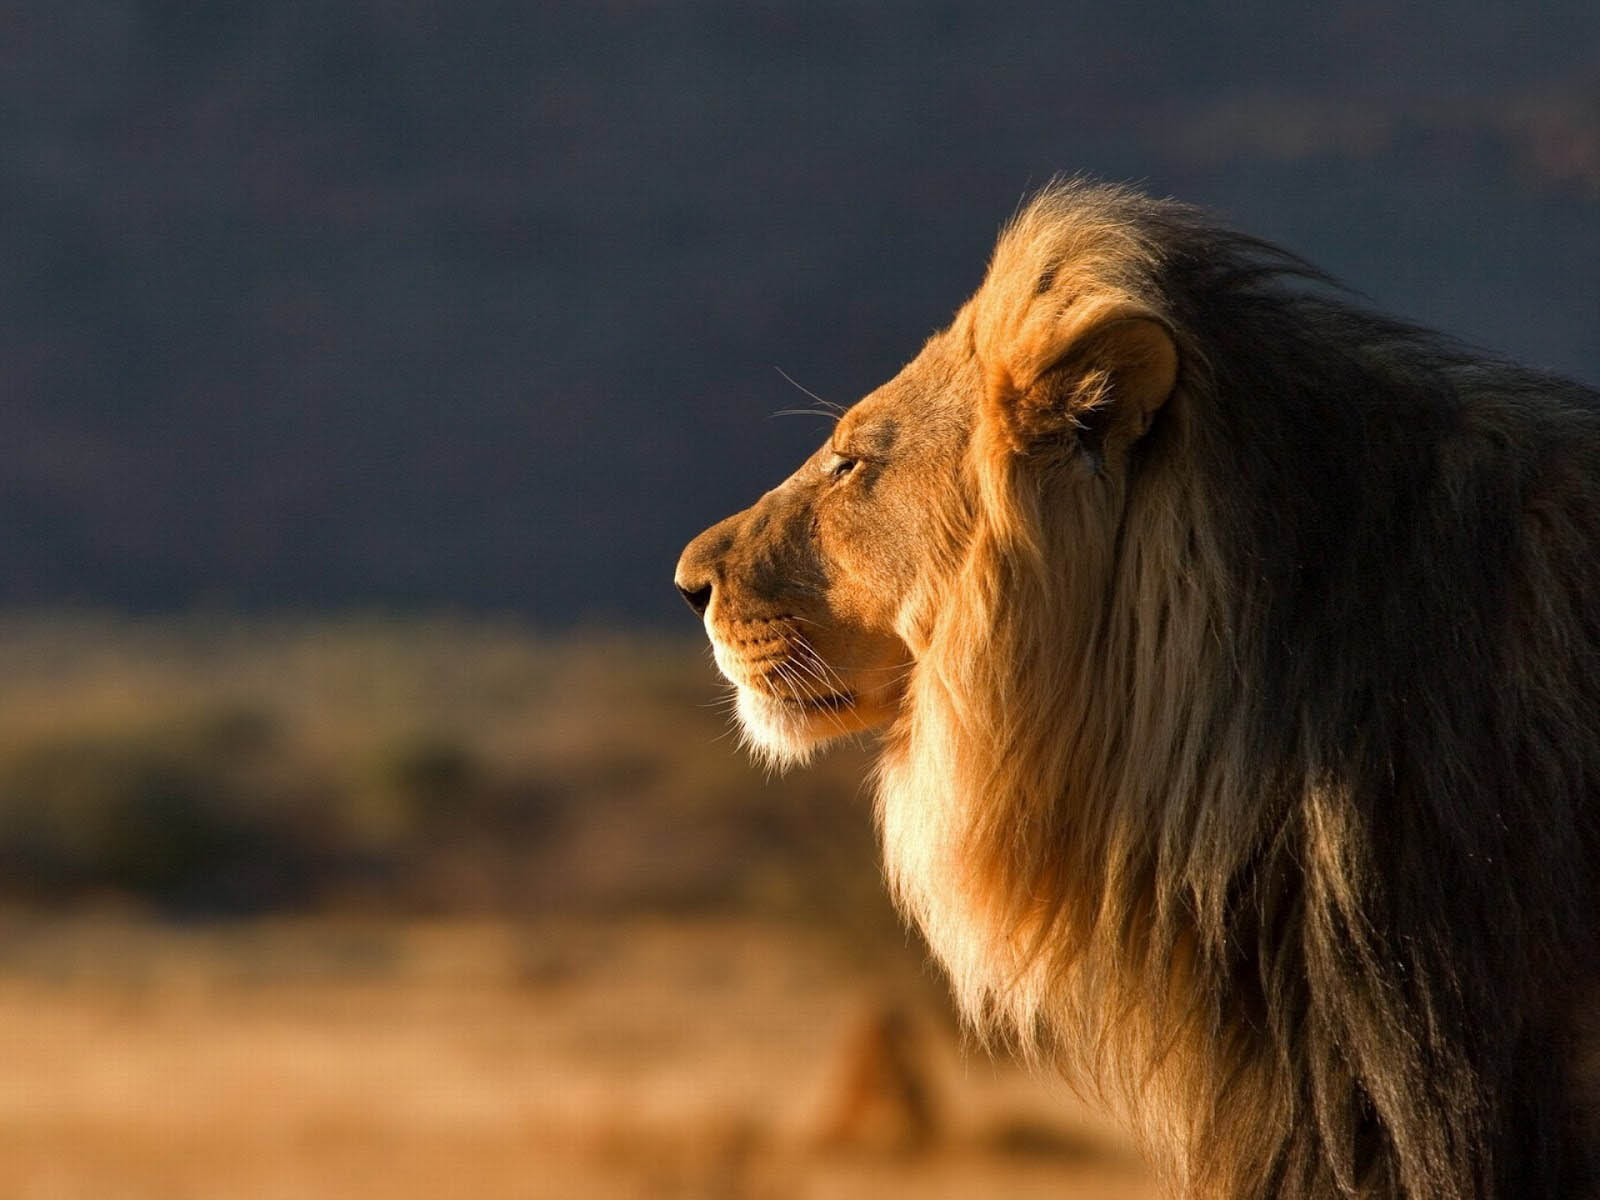 wallpapers Male Lion Wallpapers 1600x1200